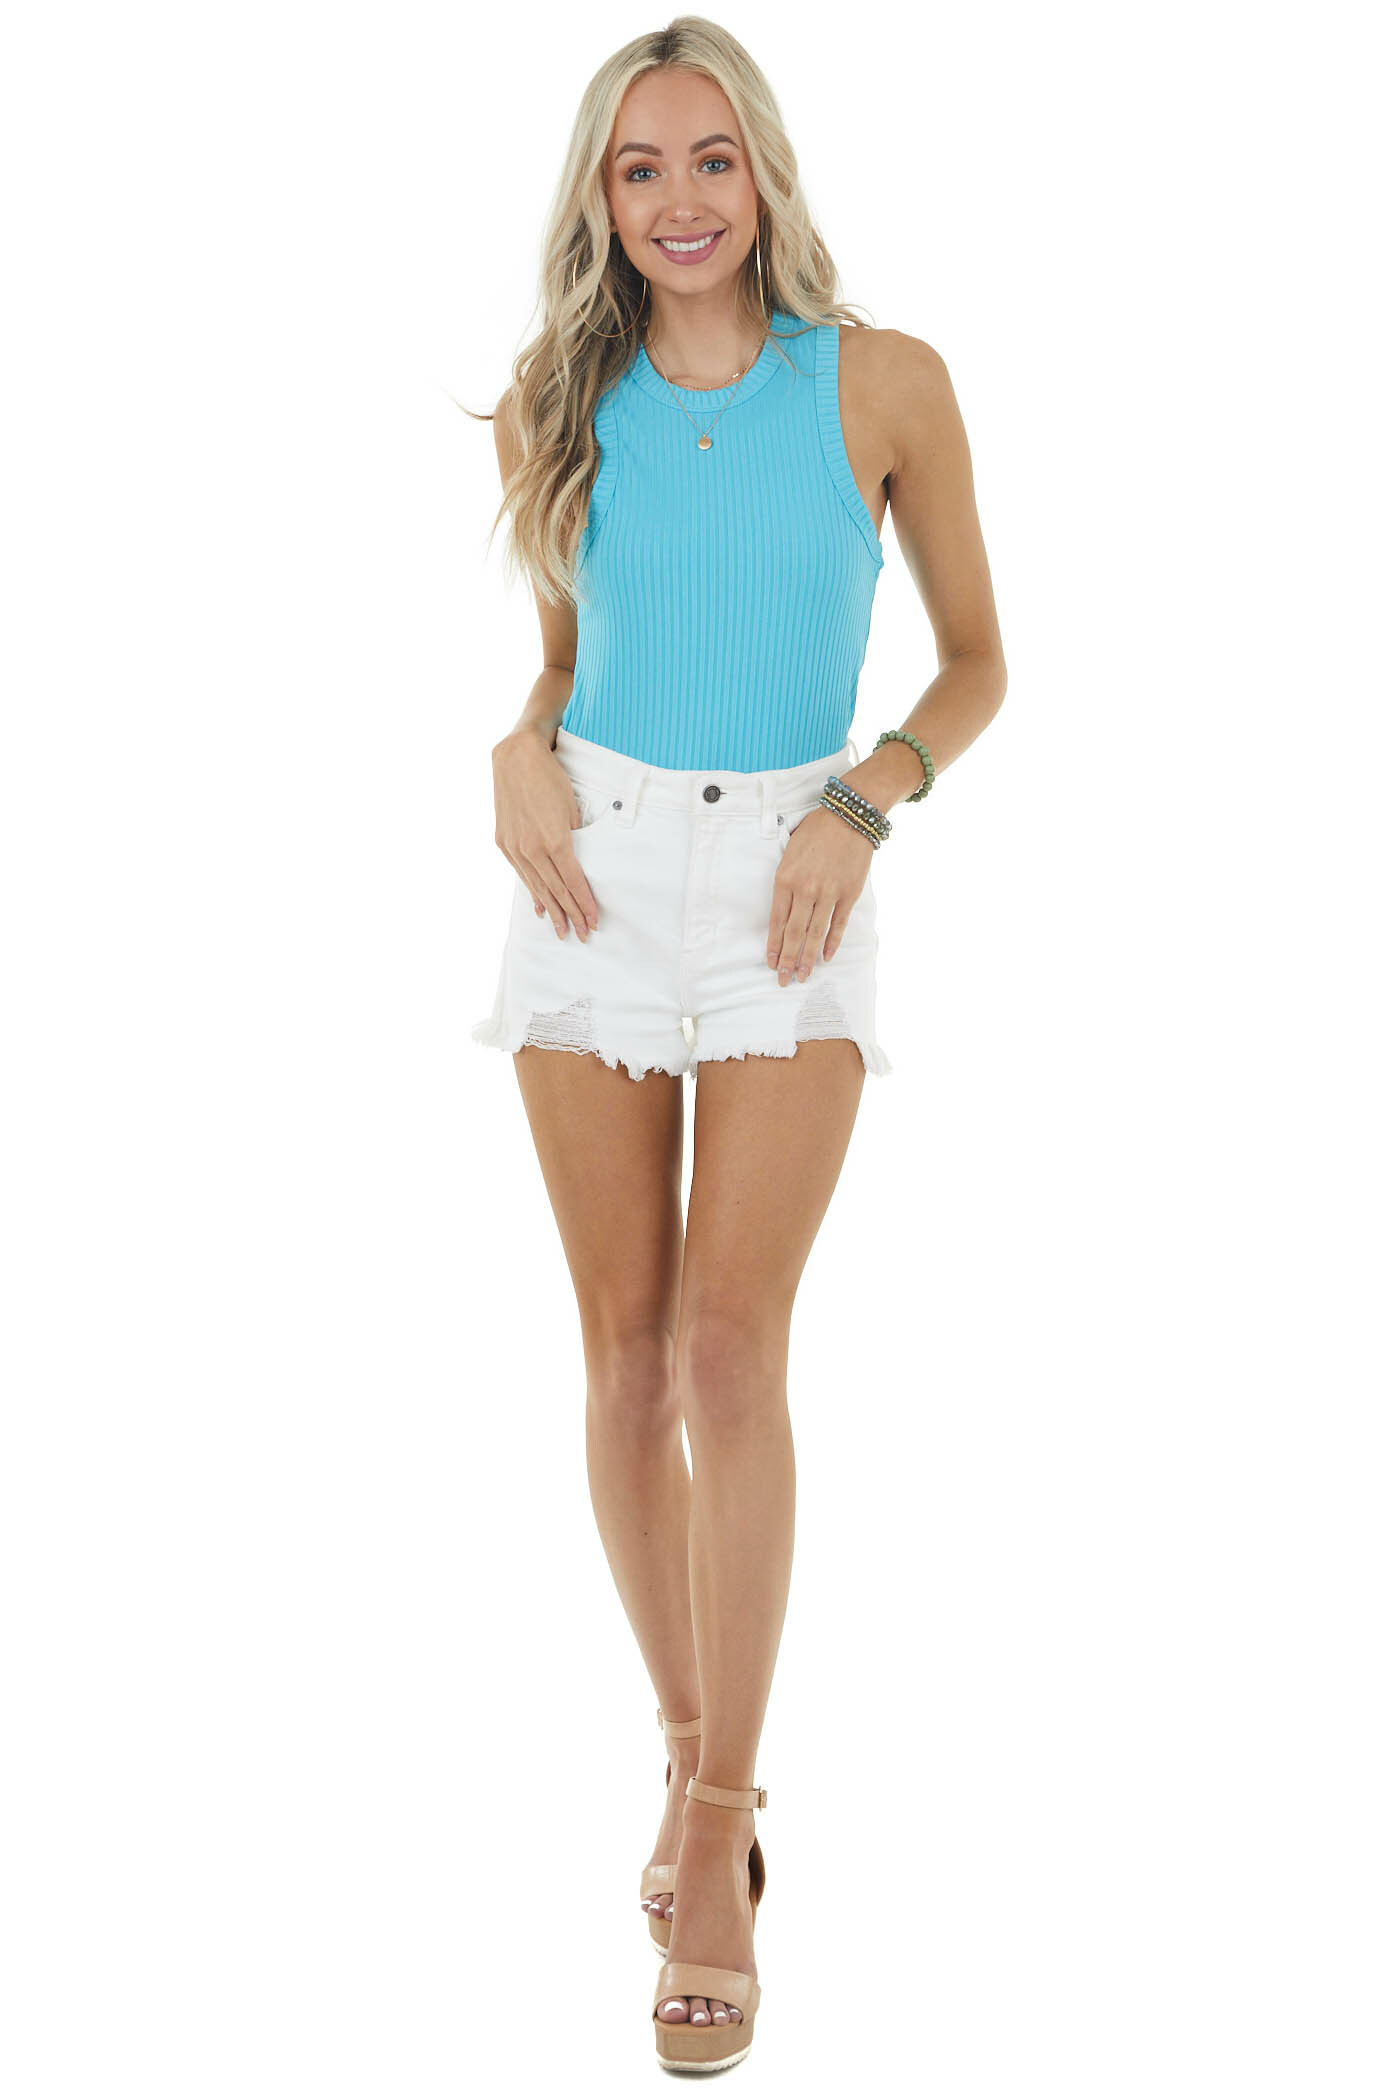 Teal Sleeveless Ribbed Stretchy Halter Knit Tank Top